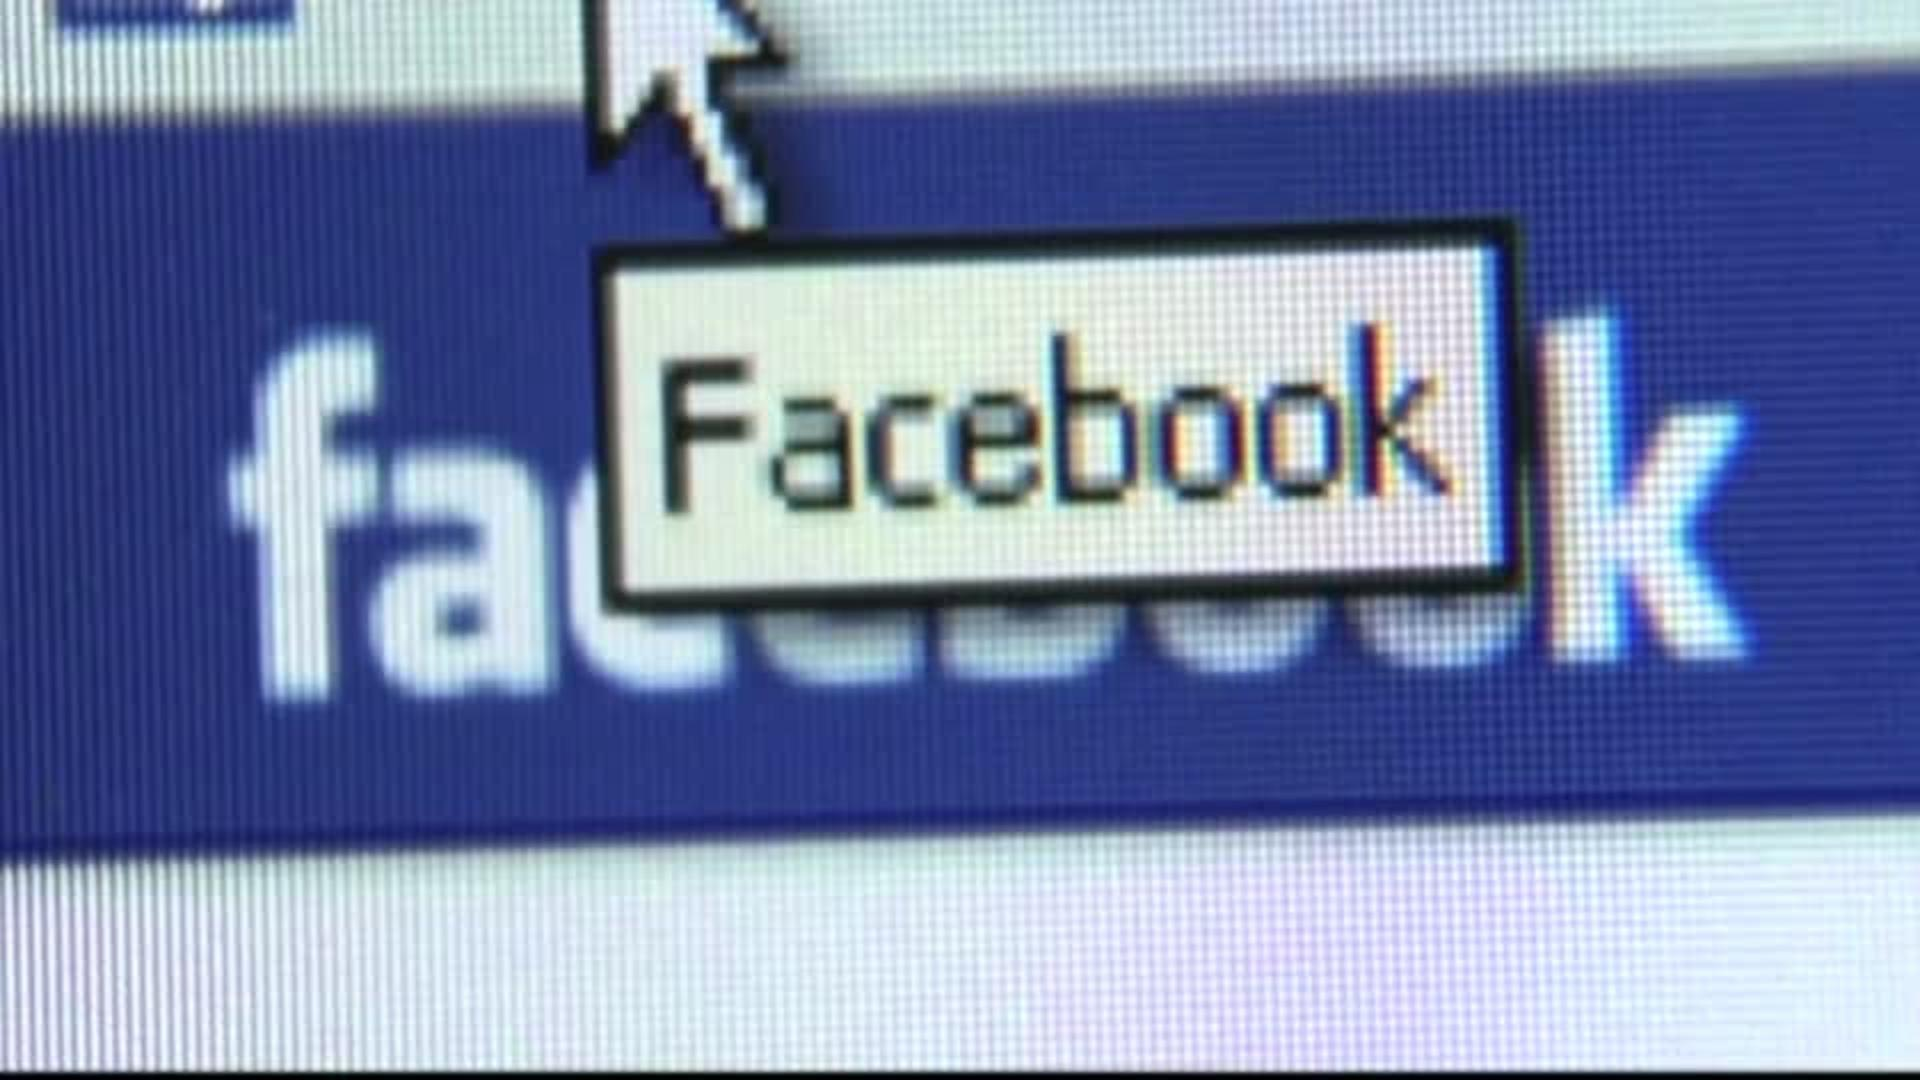 Facebook's Facial Recognition Technology Will No Longer Default To 'On'